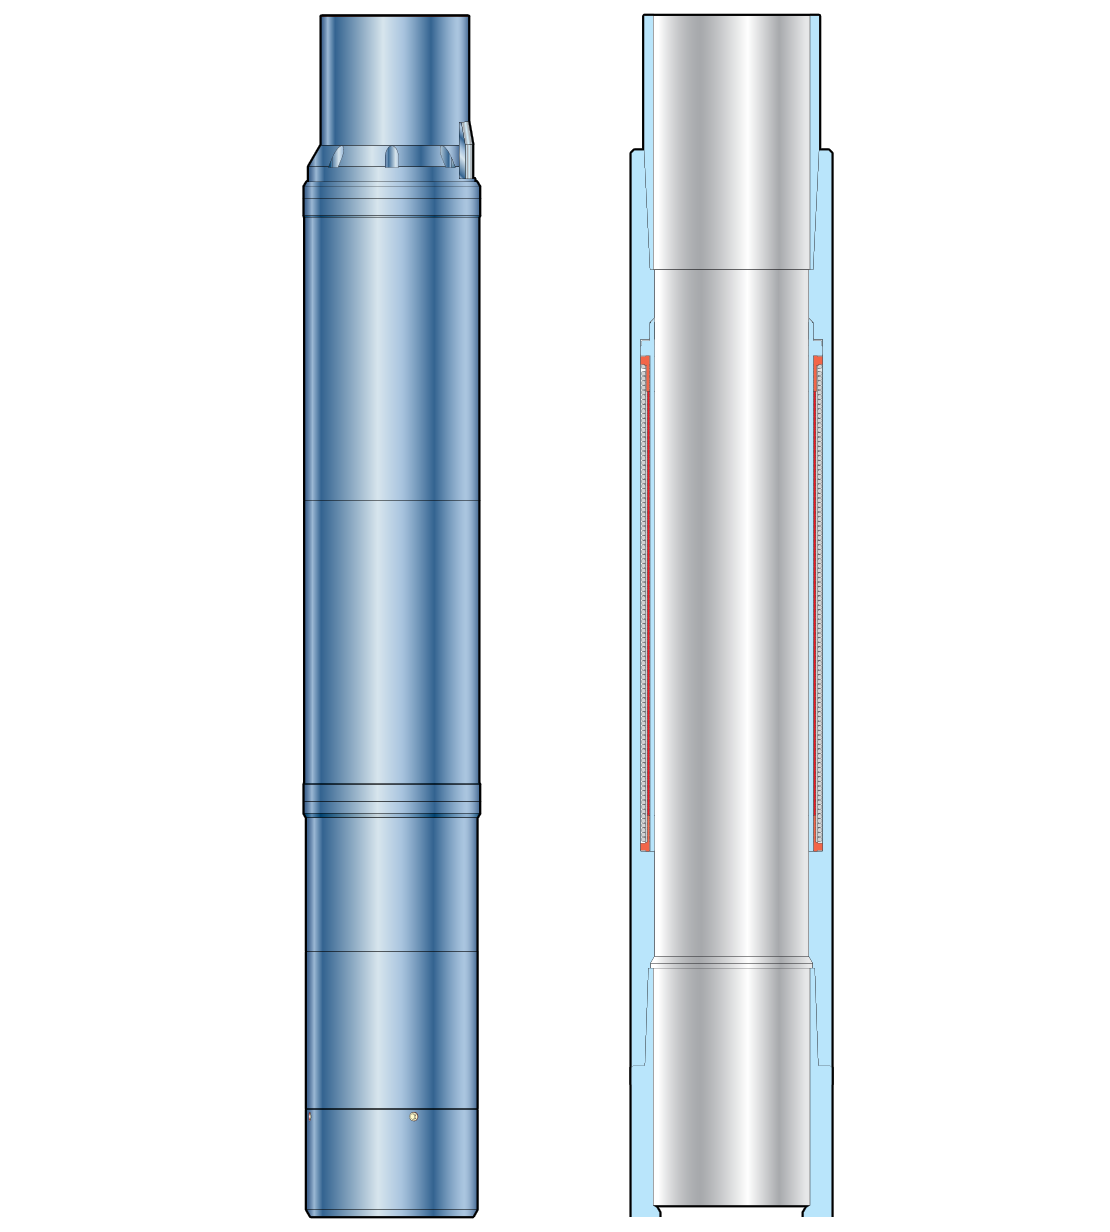 3D cutaway illustration of the inductive coupler technology for intelligent completions.